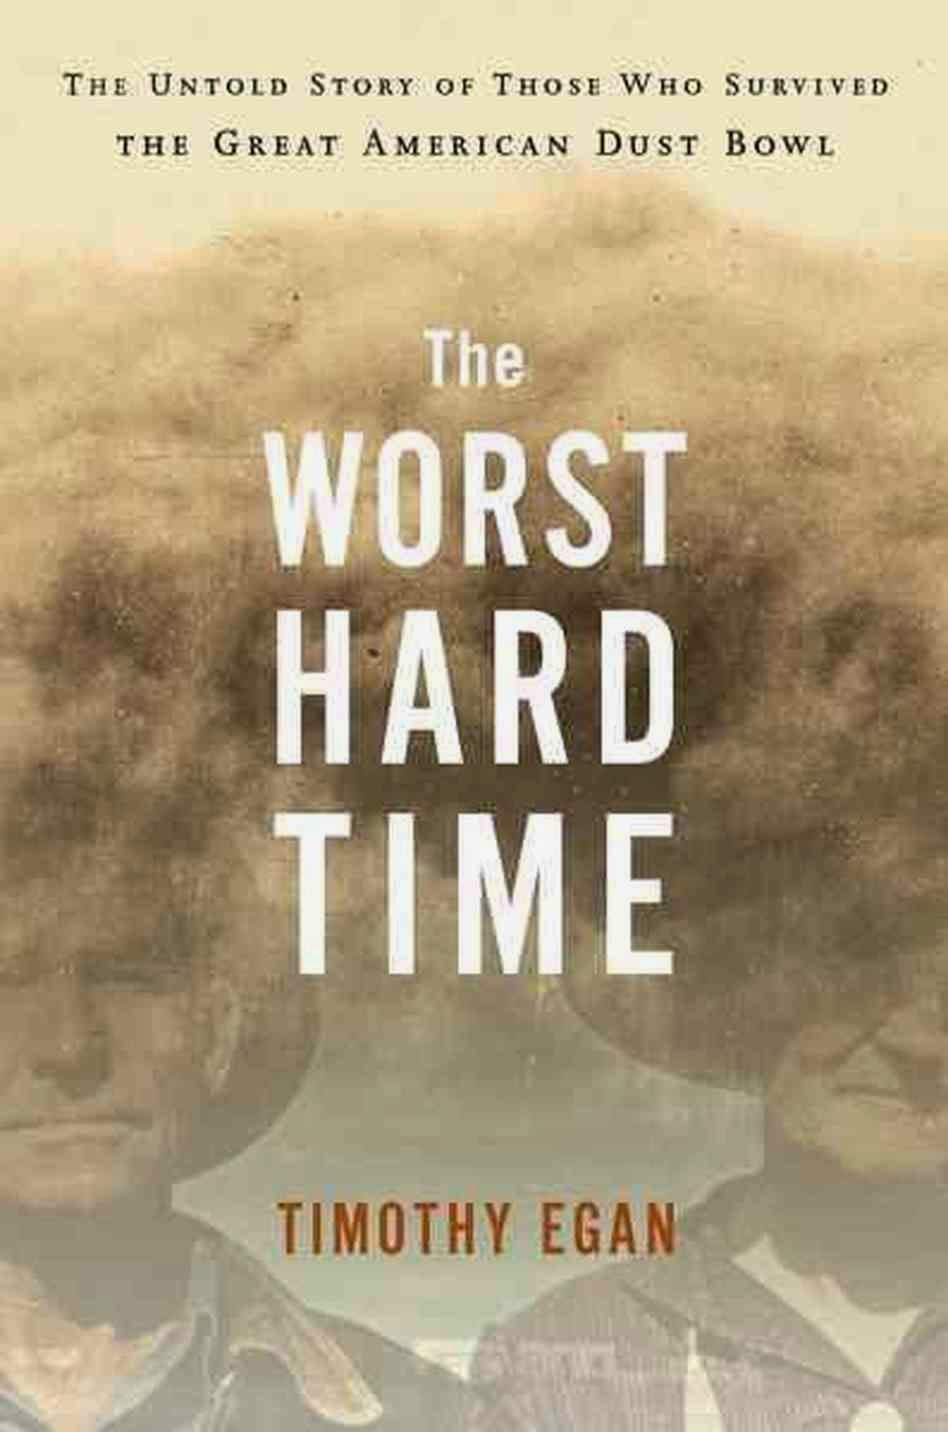 the worst hard time thesis Timothy egan expresses his wish for sounder government policy to avoid natural disasters egan's the worst hard time is a harrowing tale about farmers who.